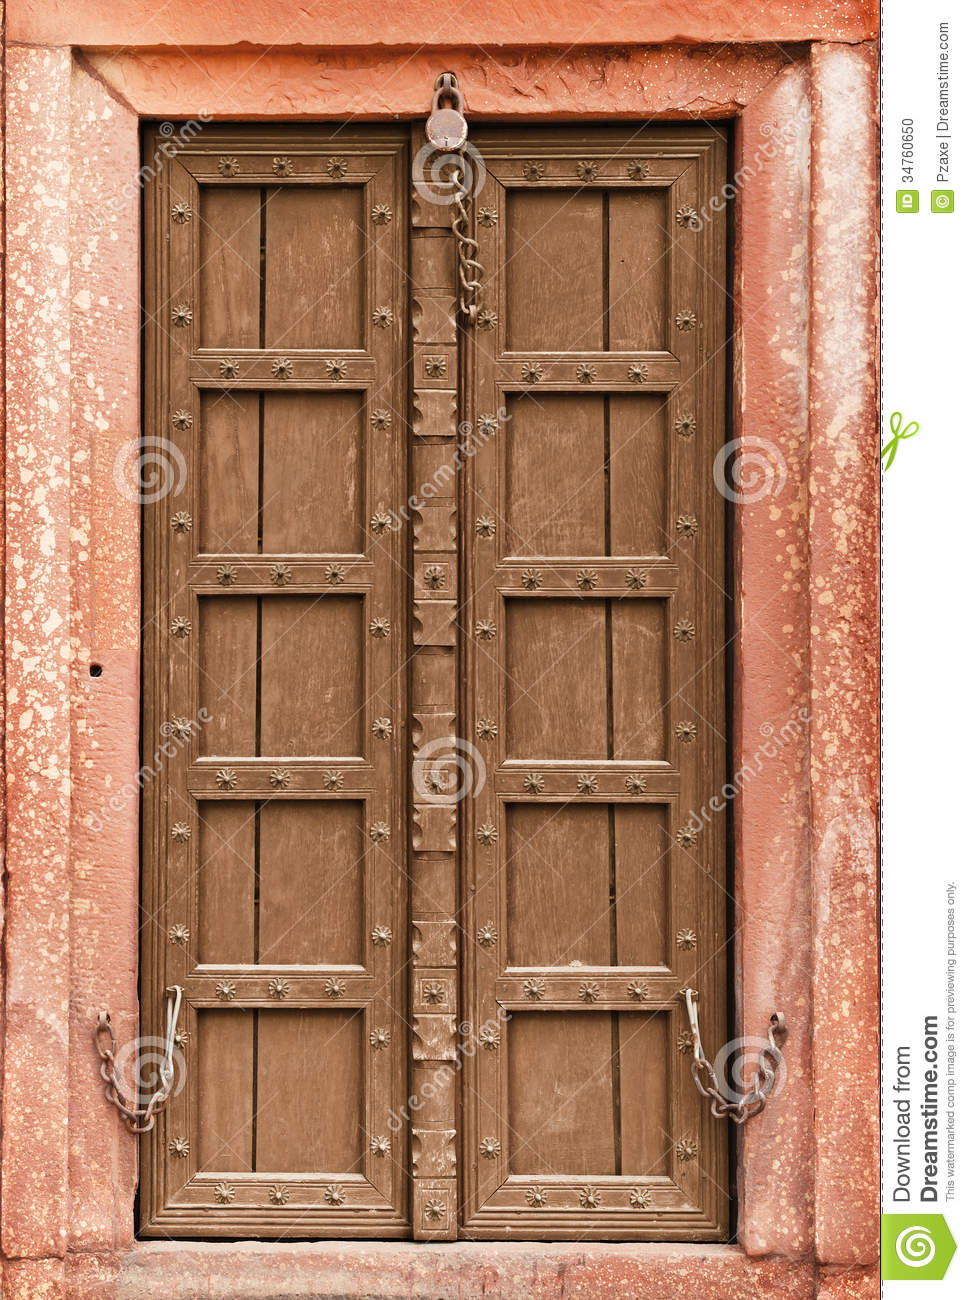 Old Wooden Doors : Old wooden door part of indian architecture stock photo